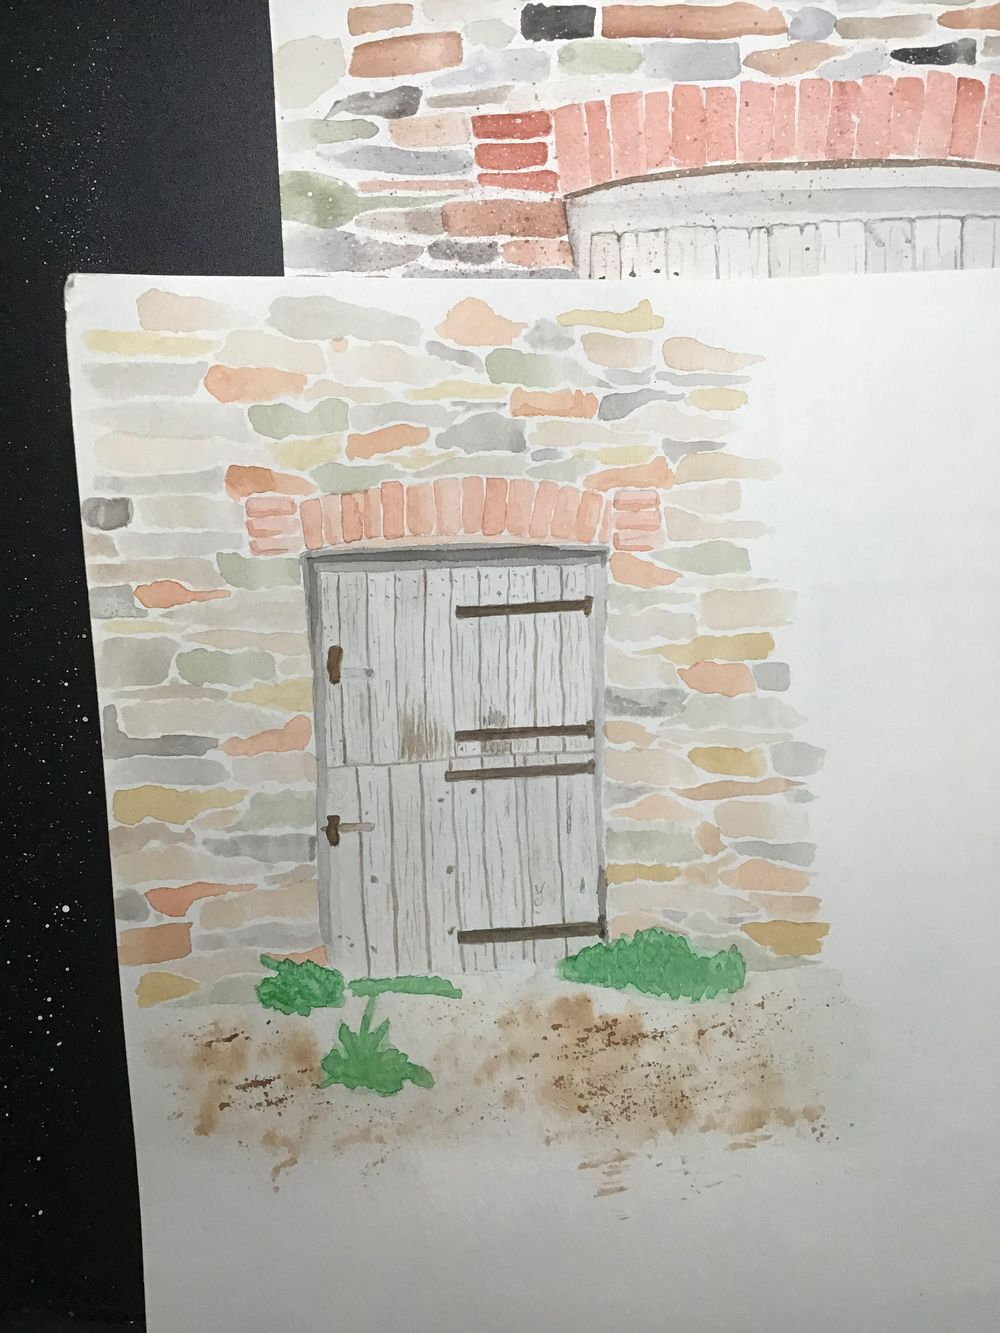 Doorway to somewhere - image 1 - student project